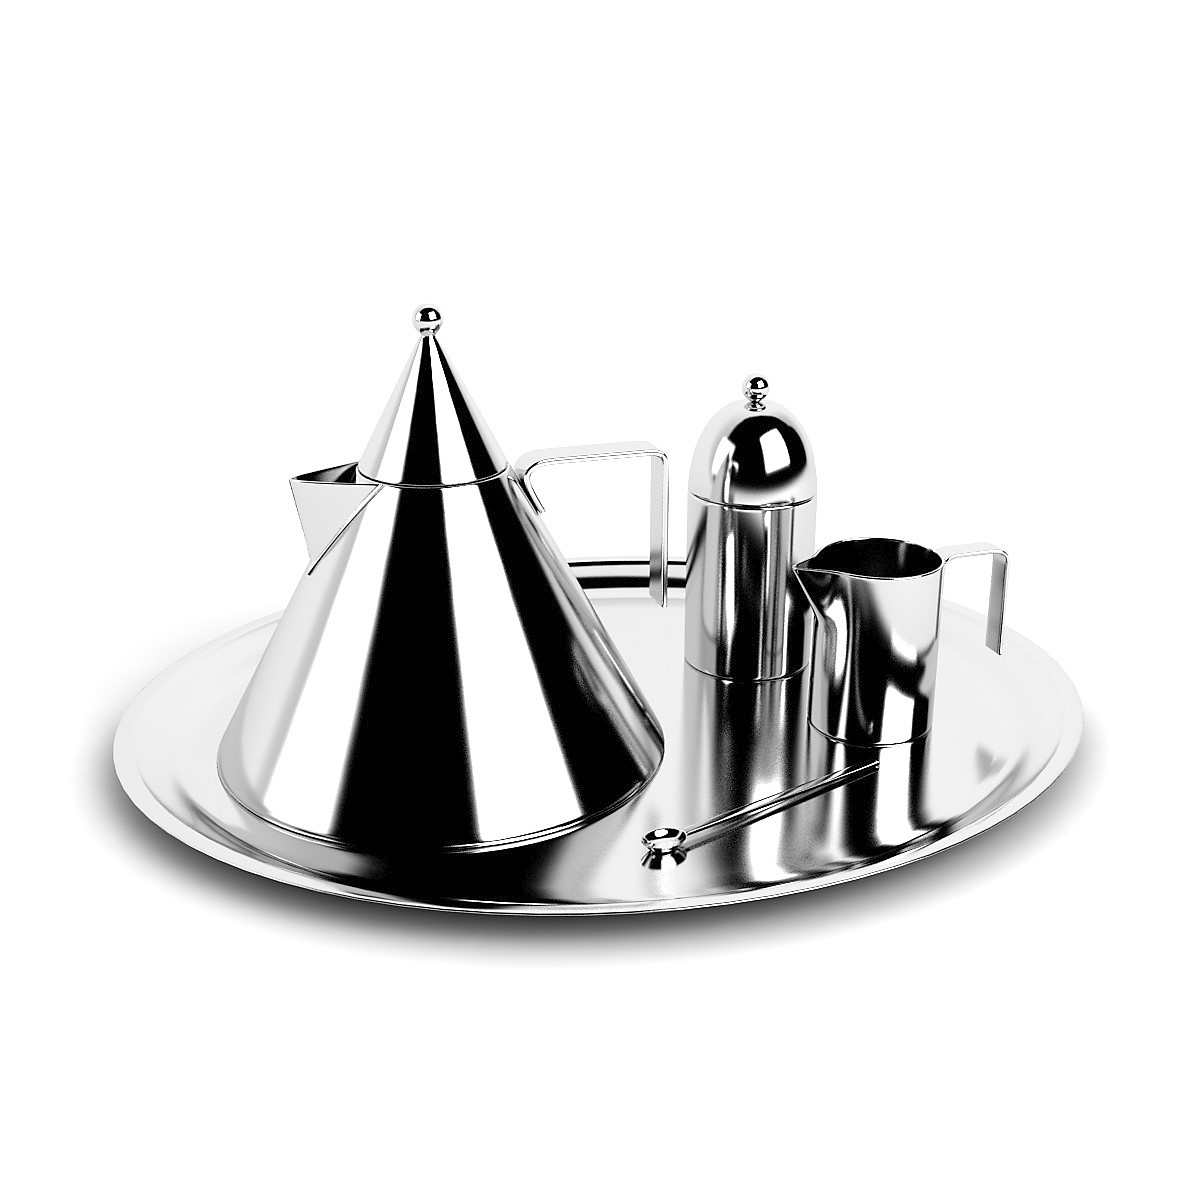 Officina Alessi - Aldo Rossi Kettle Il Conico, Rossi Sugar Bowl & Rossi Creamer Stainless steel 2